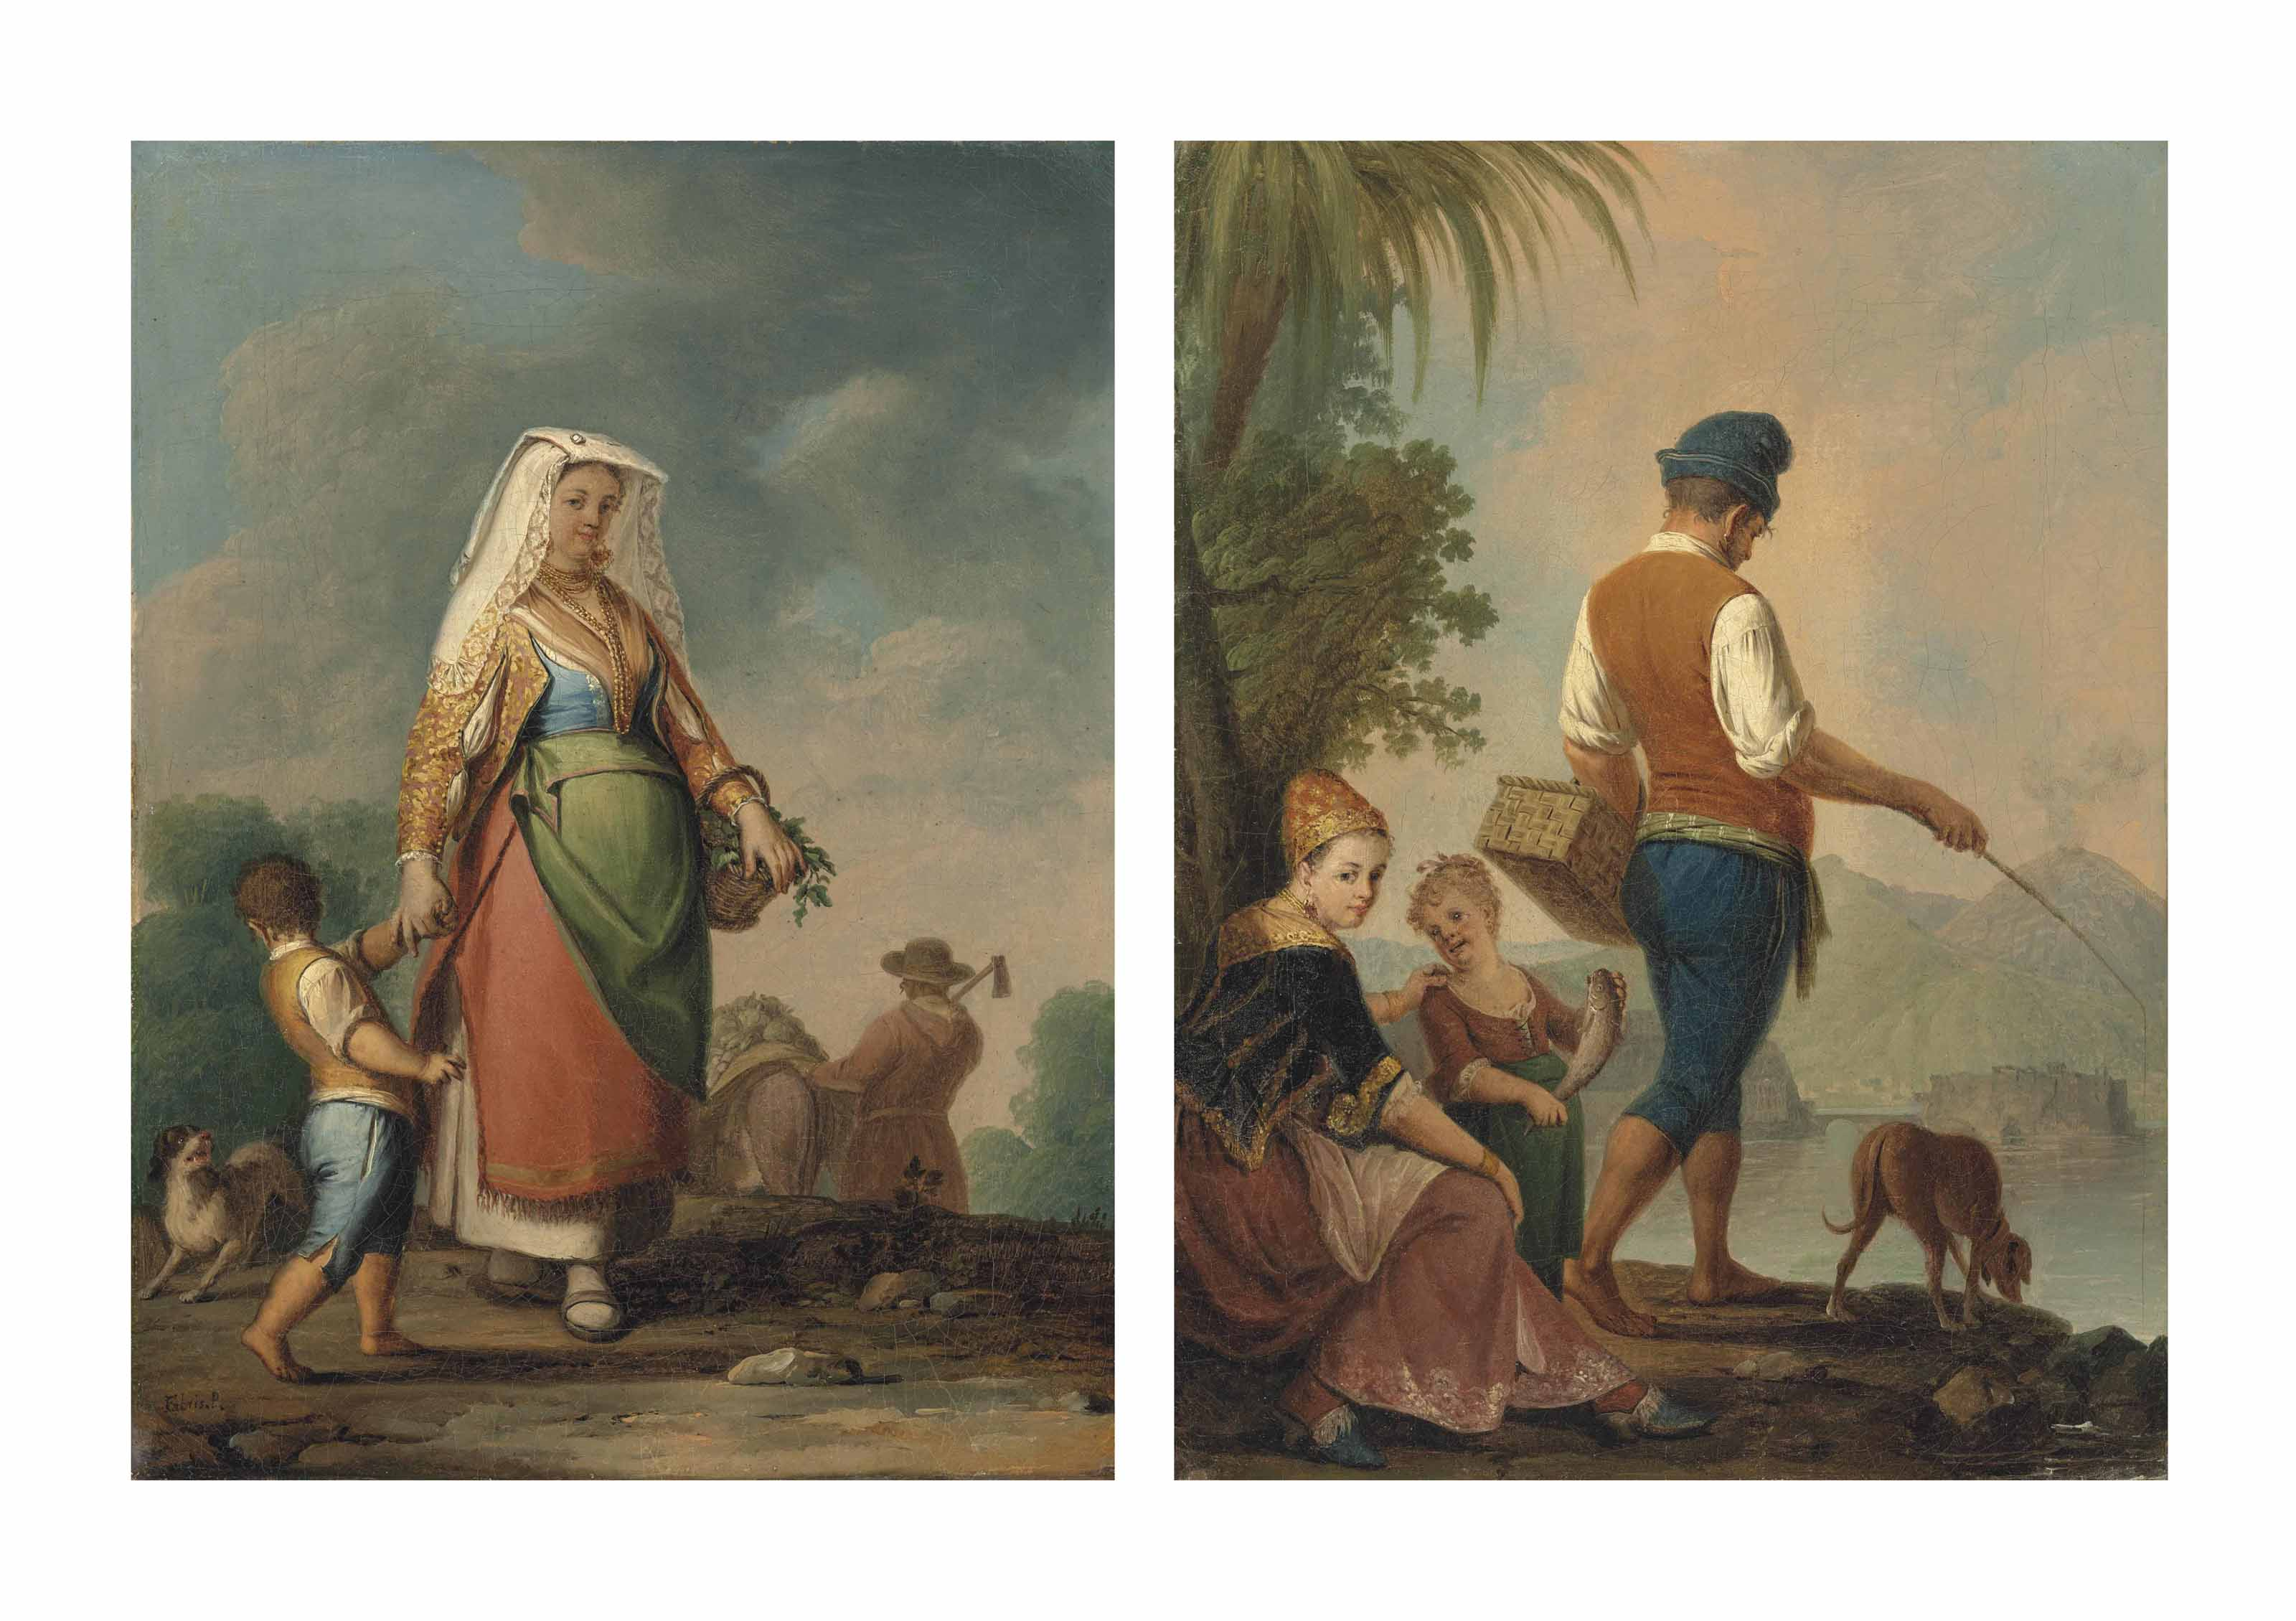 A mother and child in Neapolitan dress gathering vegetables, a farmer harvesting beyond; and A family in traditional Neapolitan dress fishing beside a river, a mountainous landscape beyond